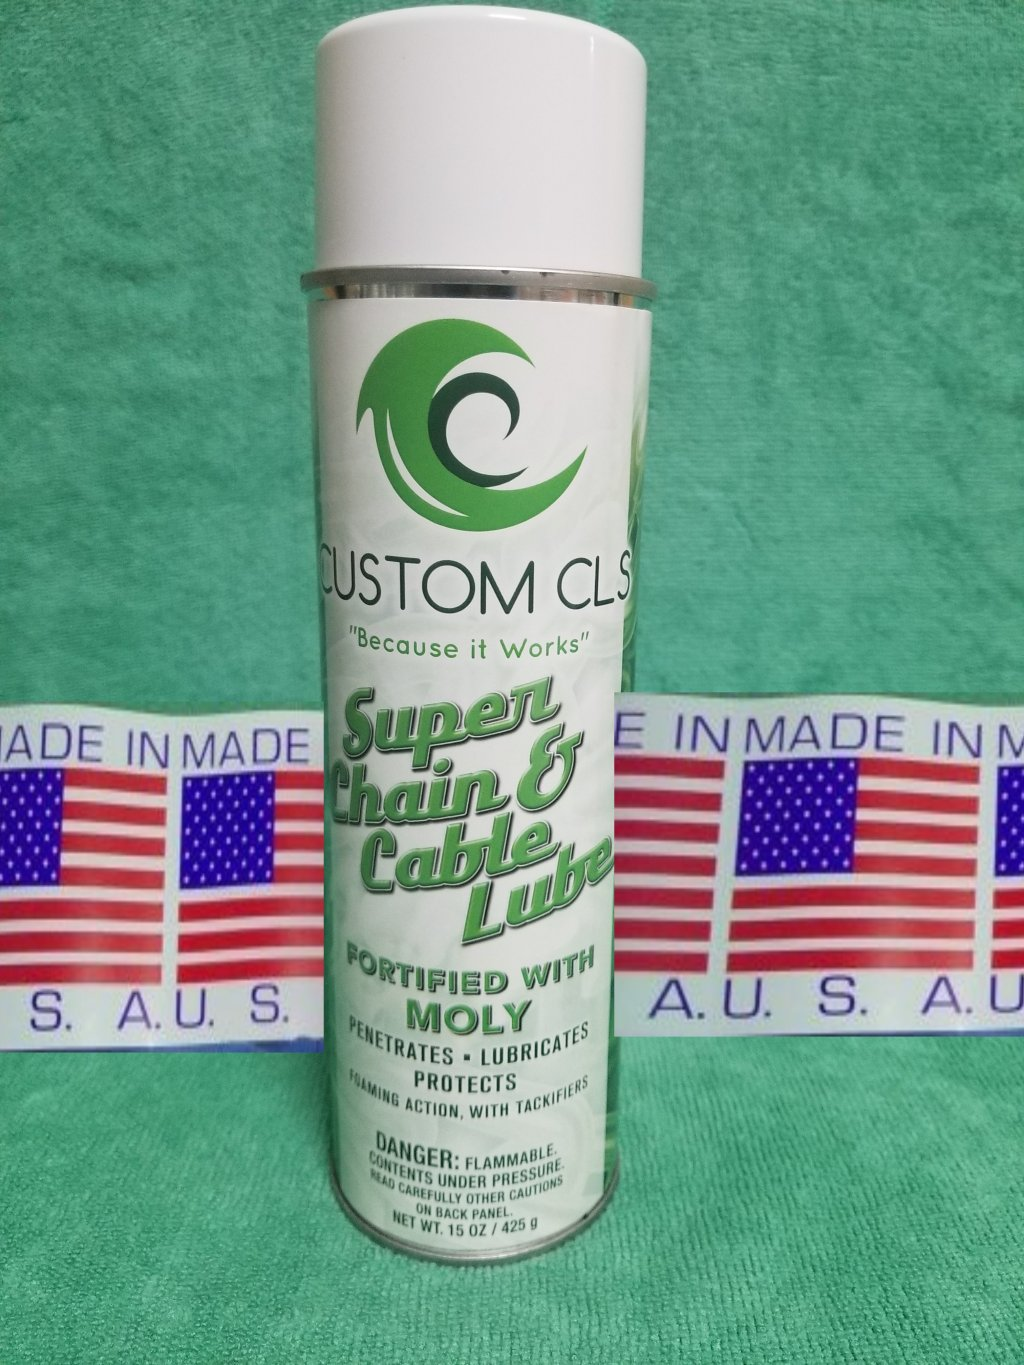 Industrial Bench Maintenance Custom Cls Aerosol Contact And Circuit Board Cleaner A Penetrating Lube That Deposits Moly Grease Deep Inside Chains Cables Where The Greatest Strength Occurs Molybdenum Disulfide Additive Provides